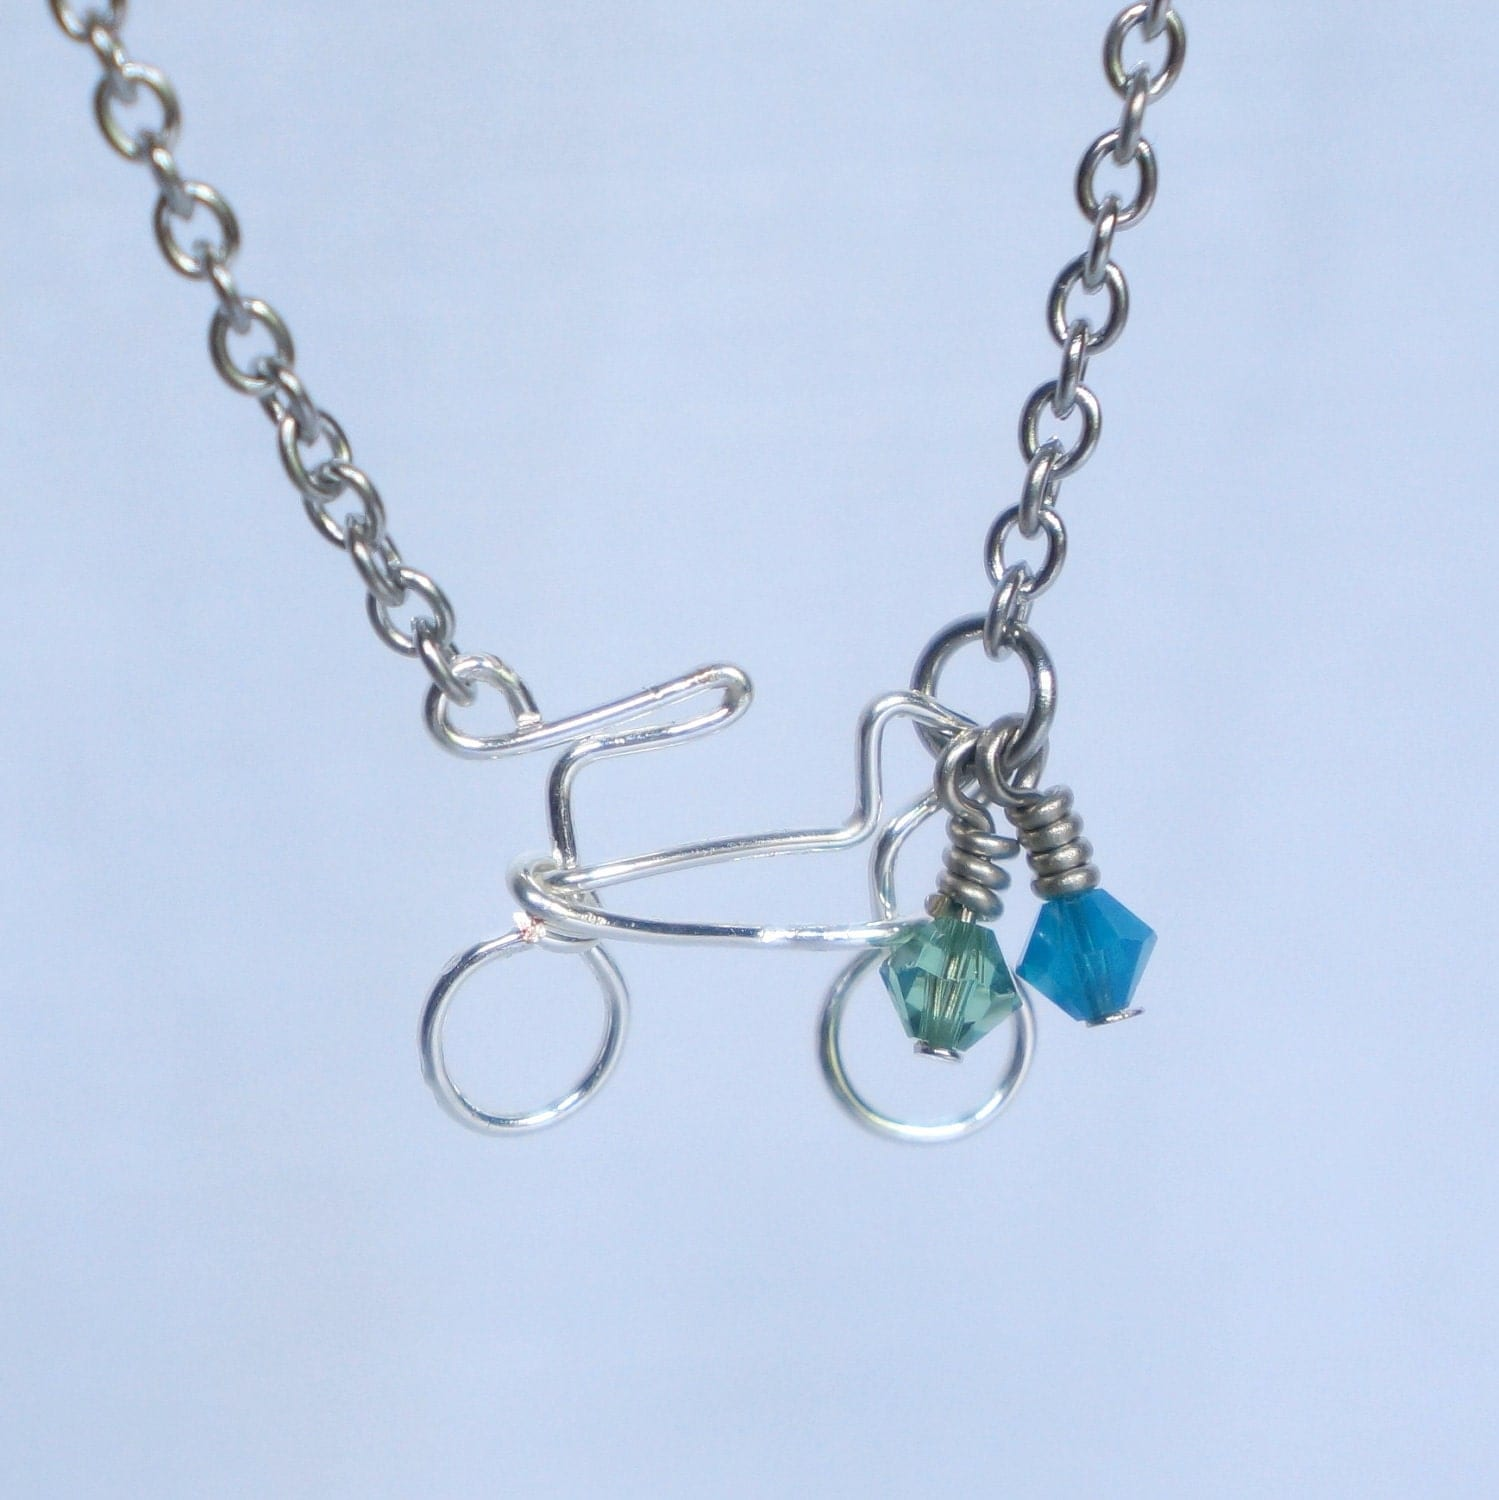 Bicycle Necklace for Charity